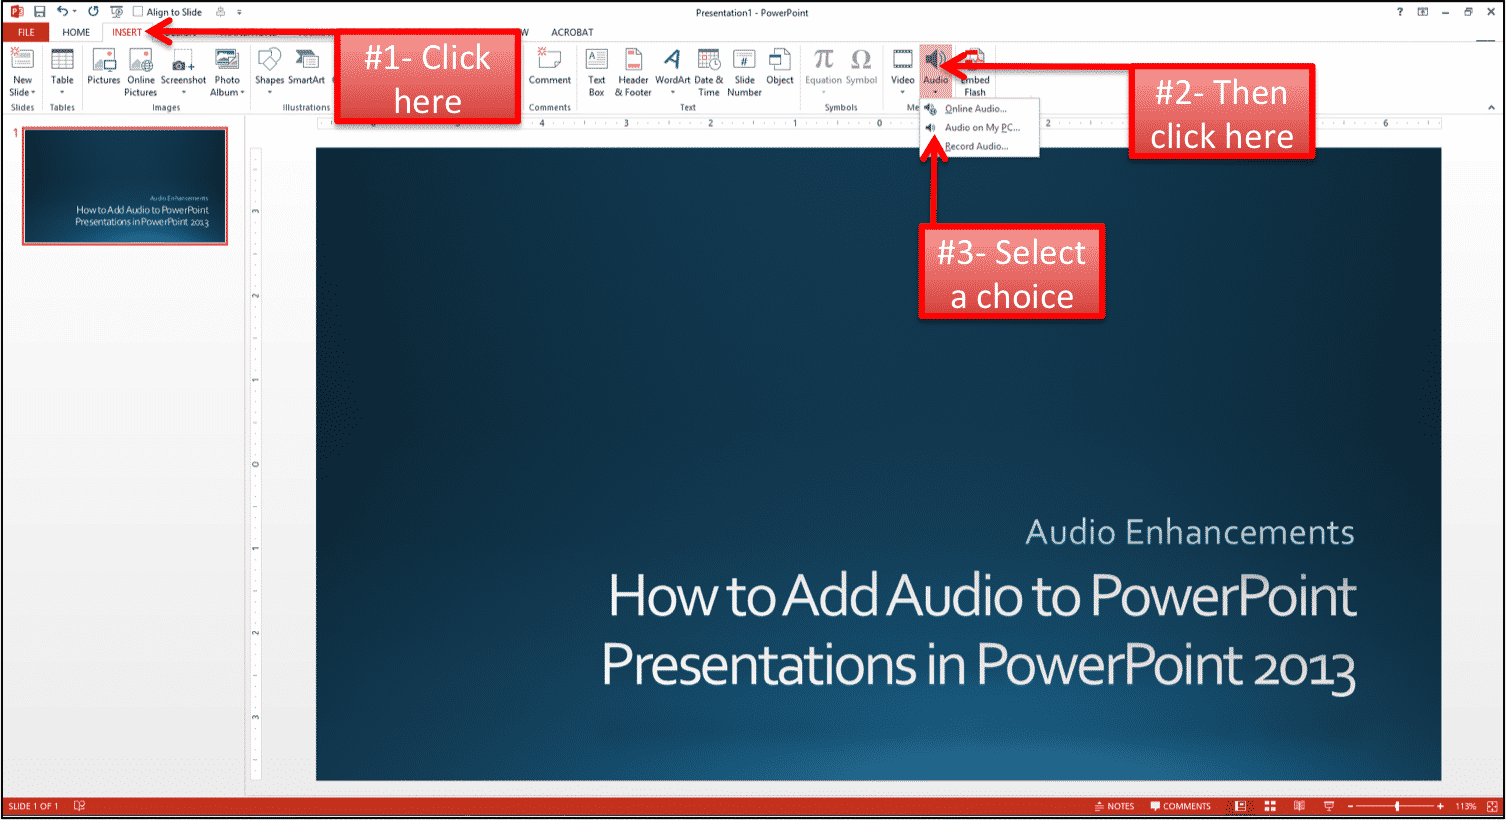 How to add music to powerpoint presentations in powerpoint 2013